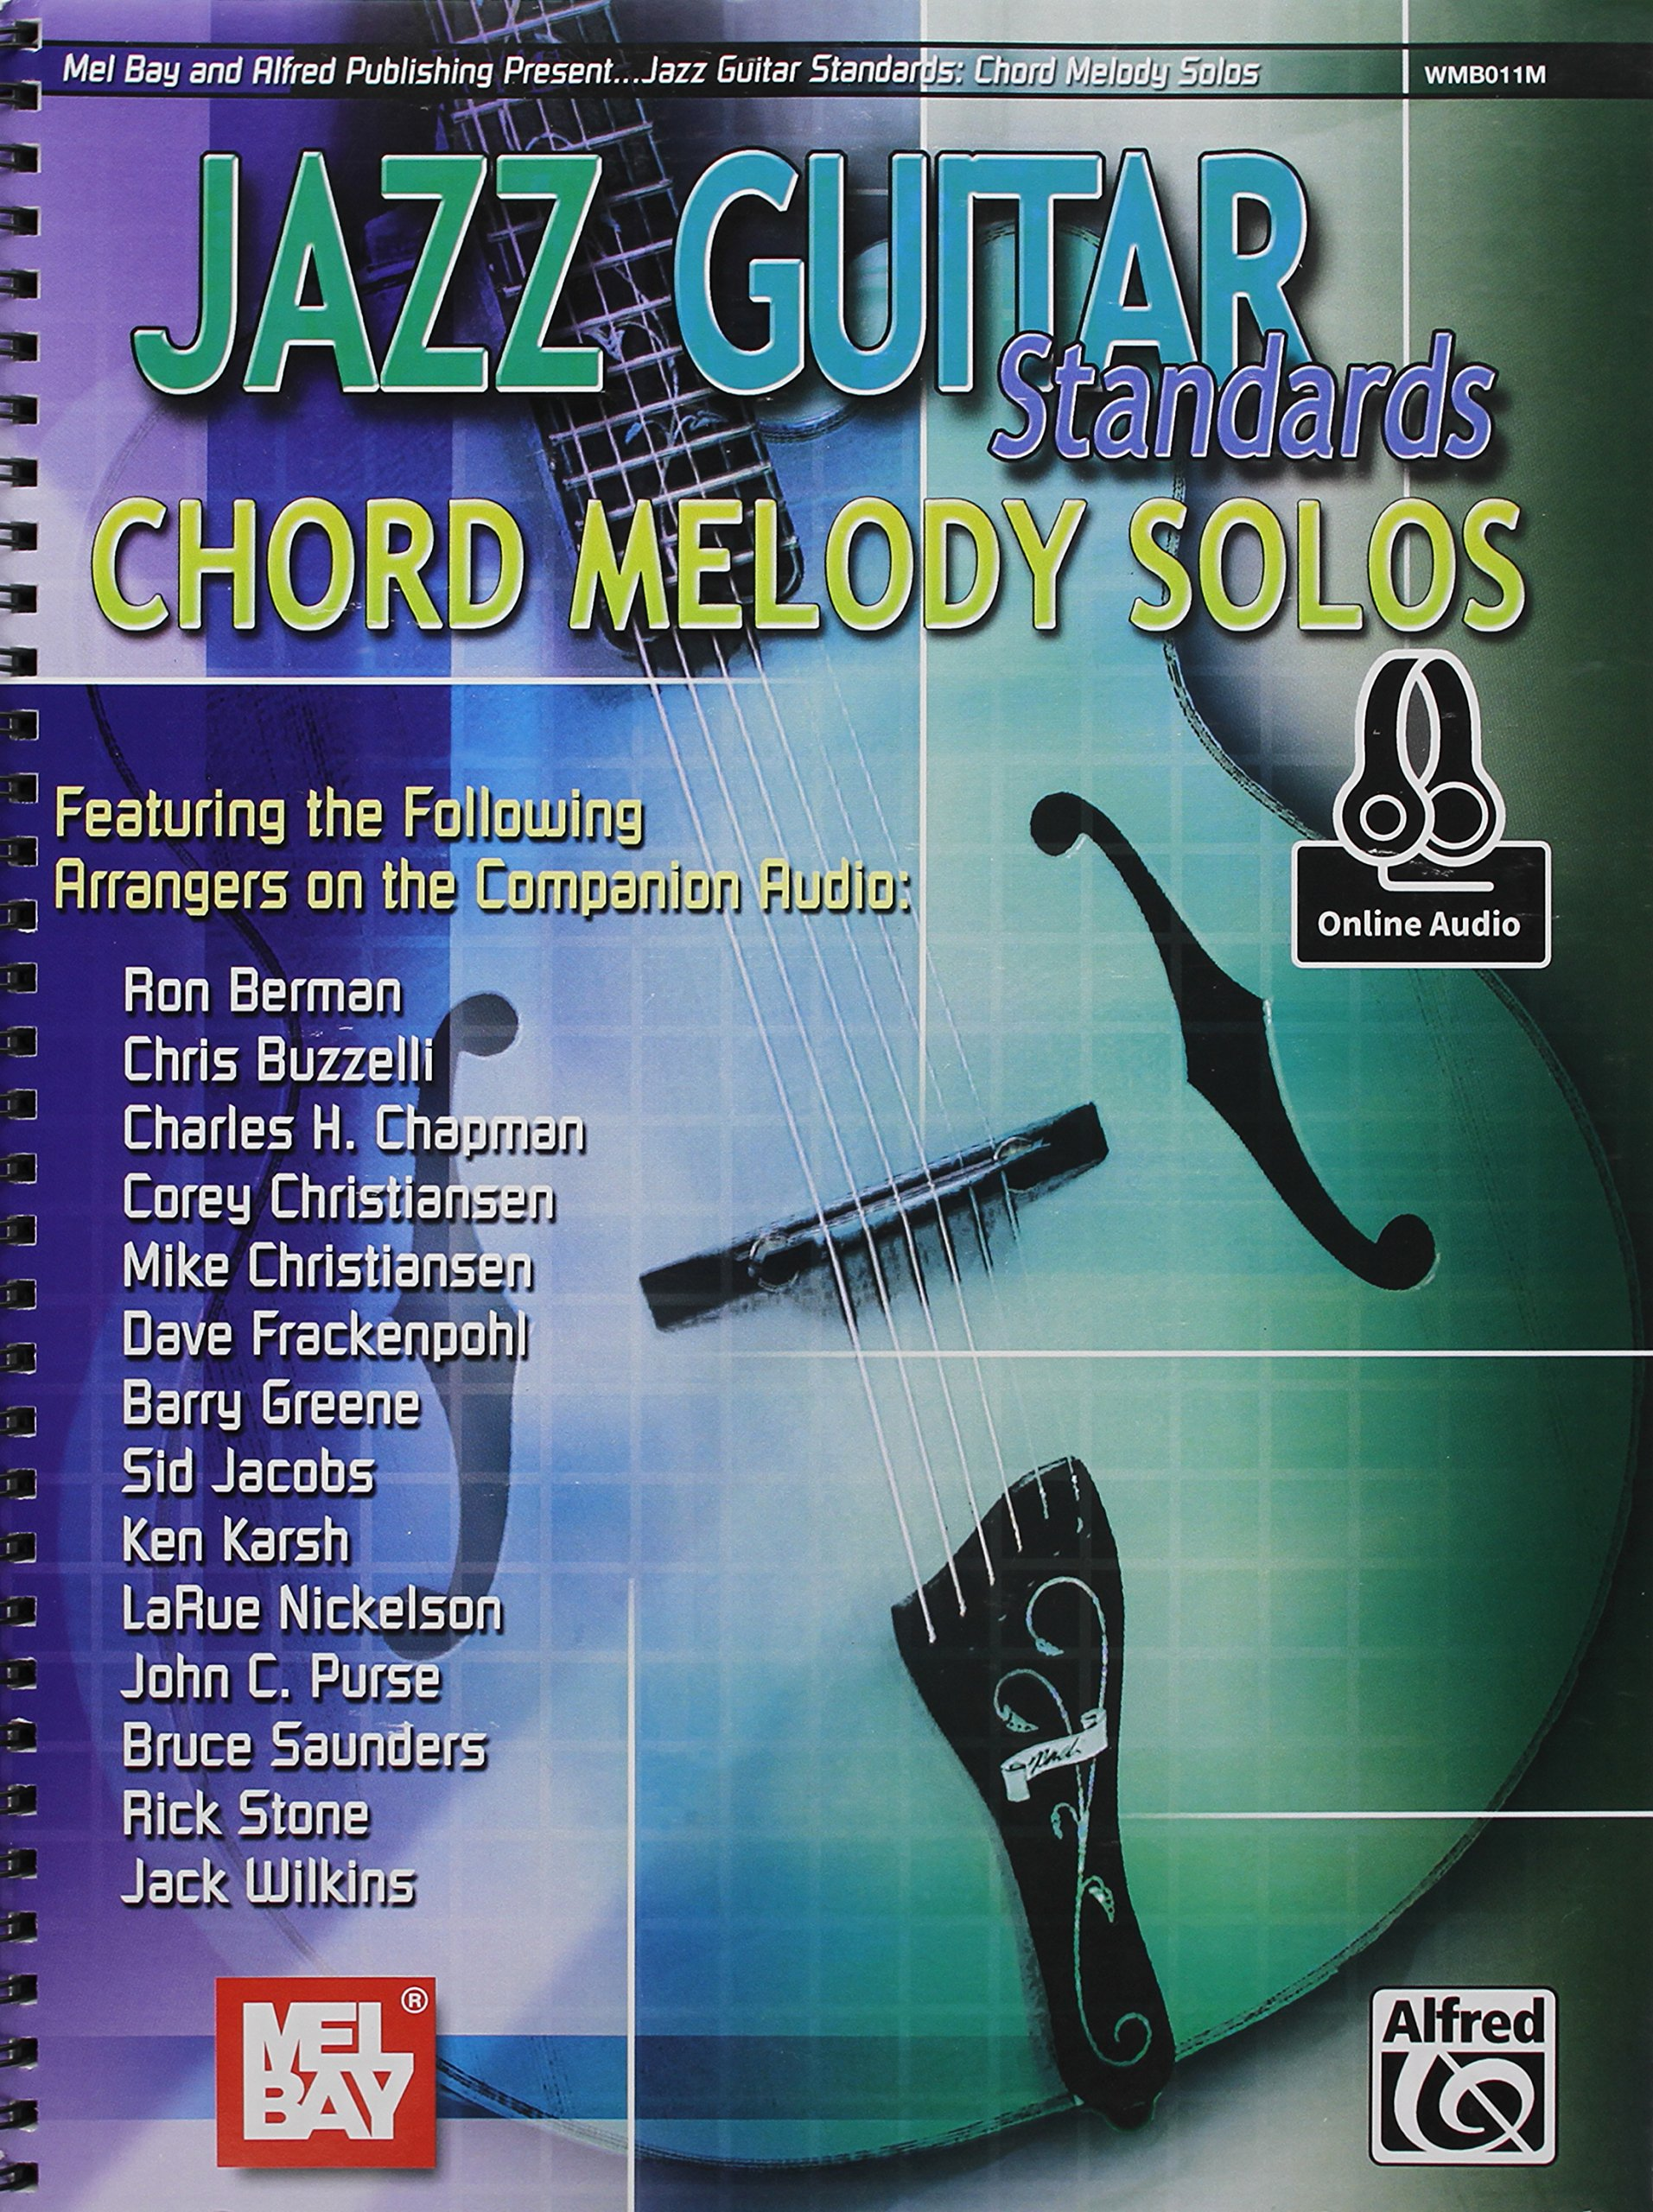 Jazz Guitar Standards Chord Melody Solos Multiple Authors